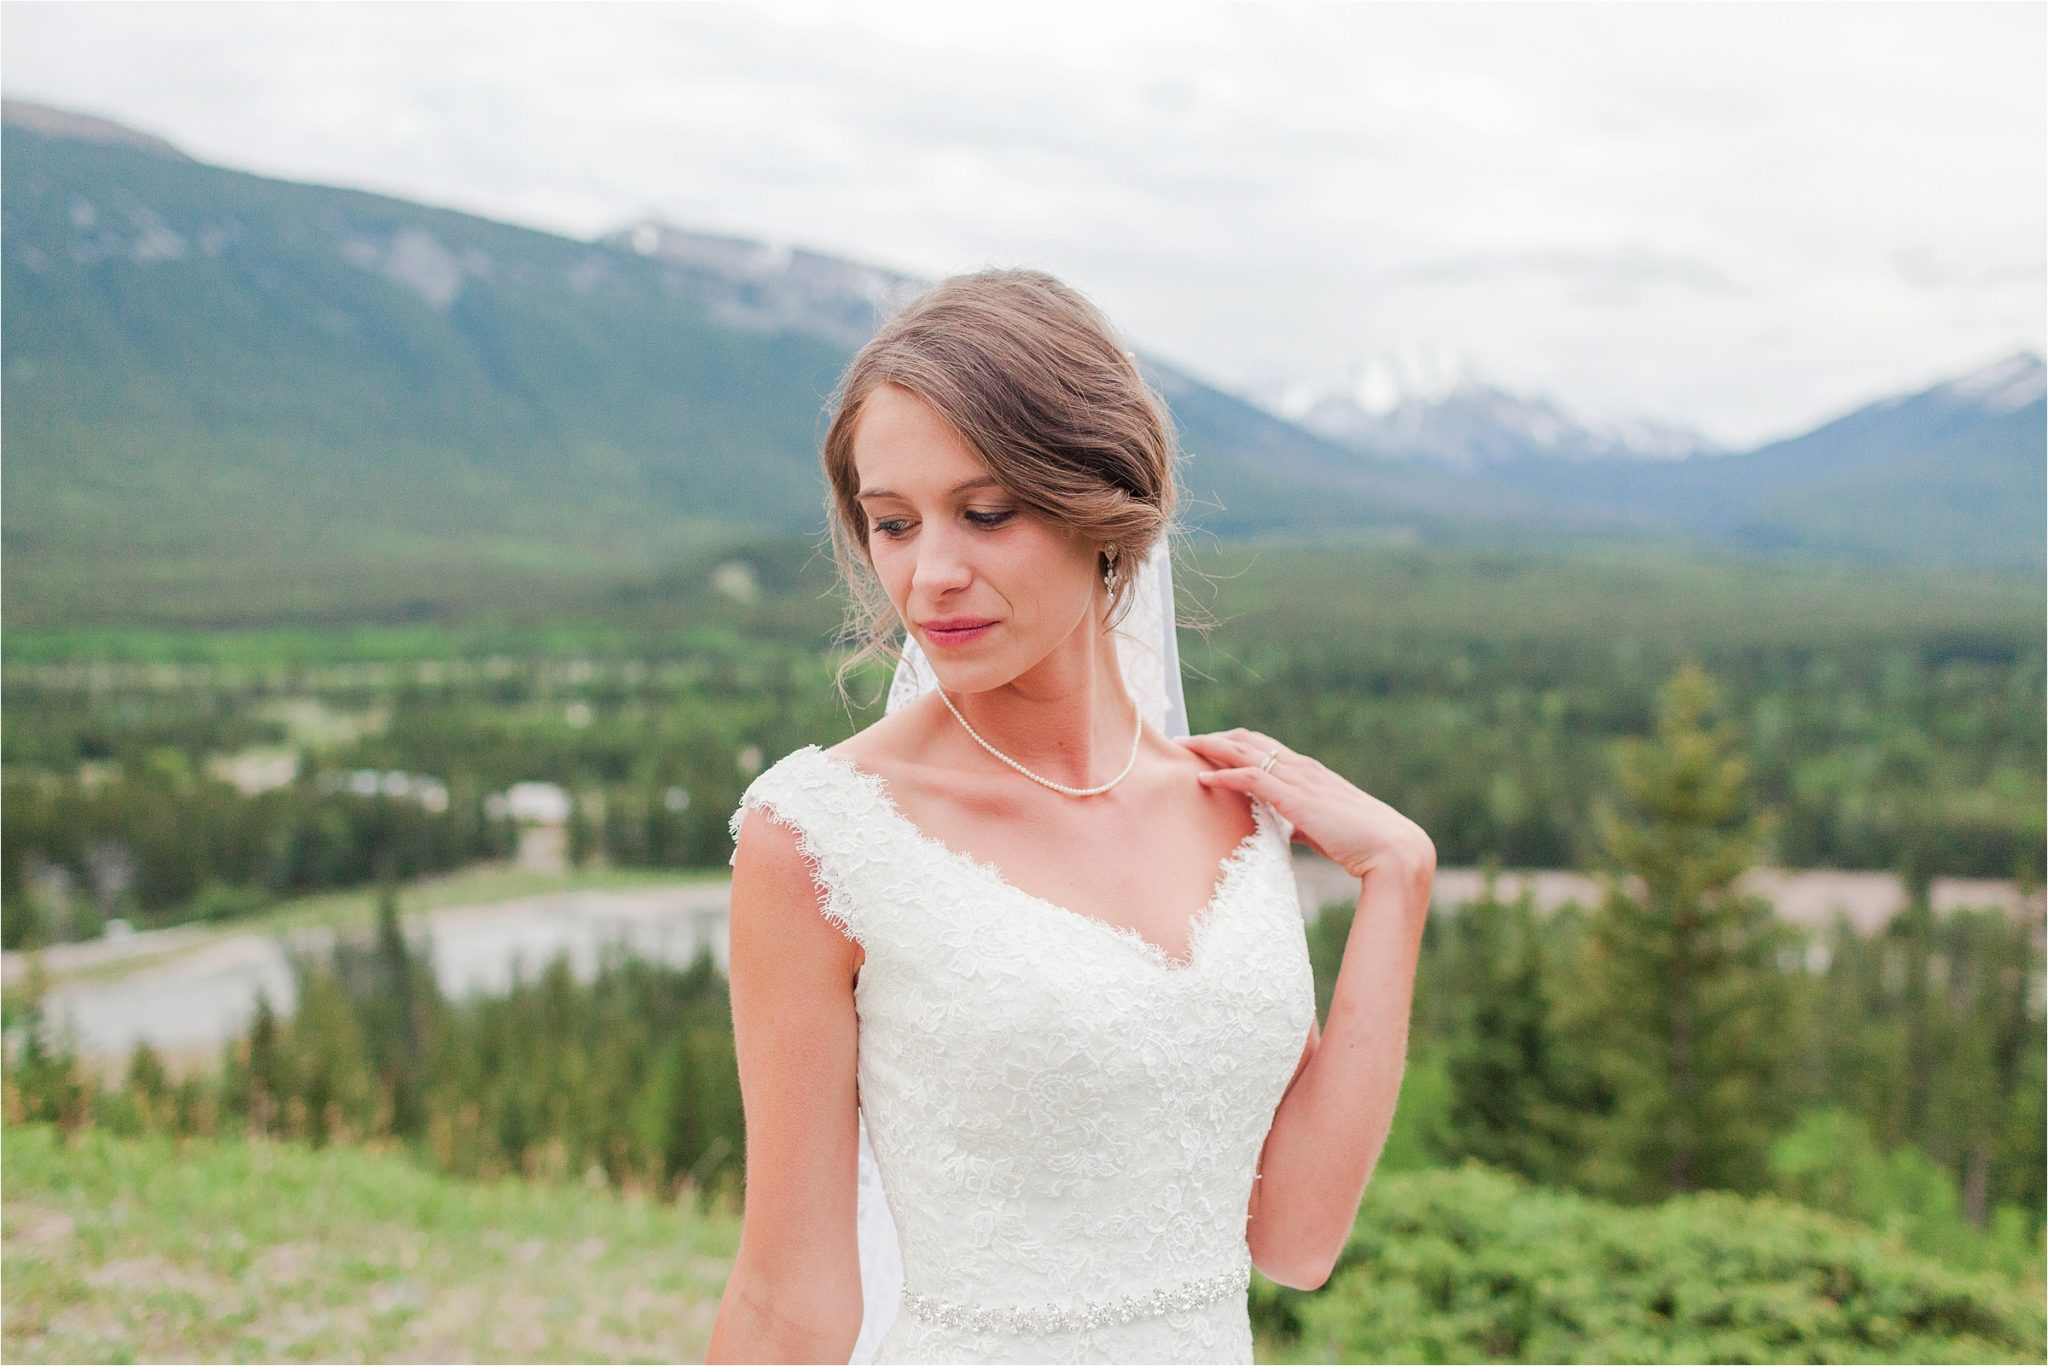 Bridal portraits Kananaskis Canada Wedding at the Delta Lodge